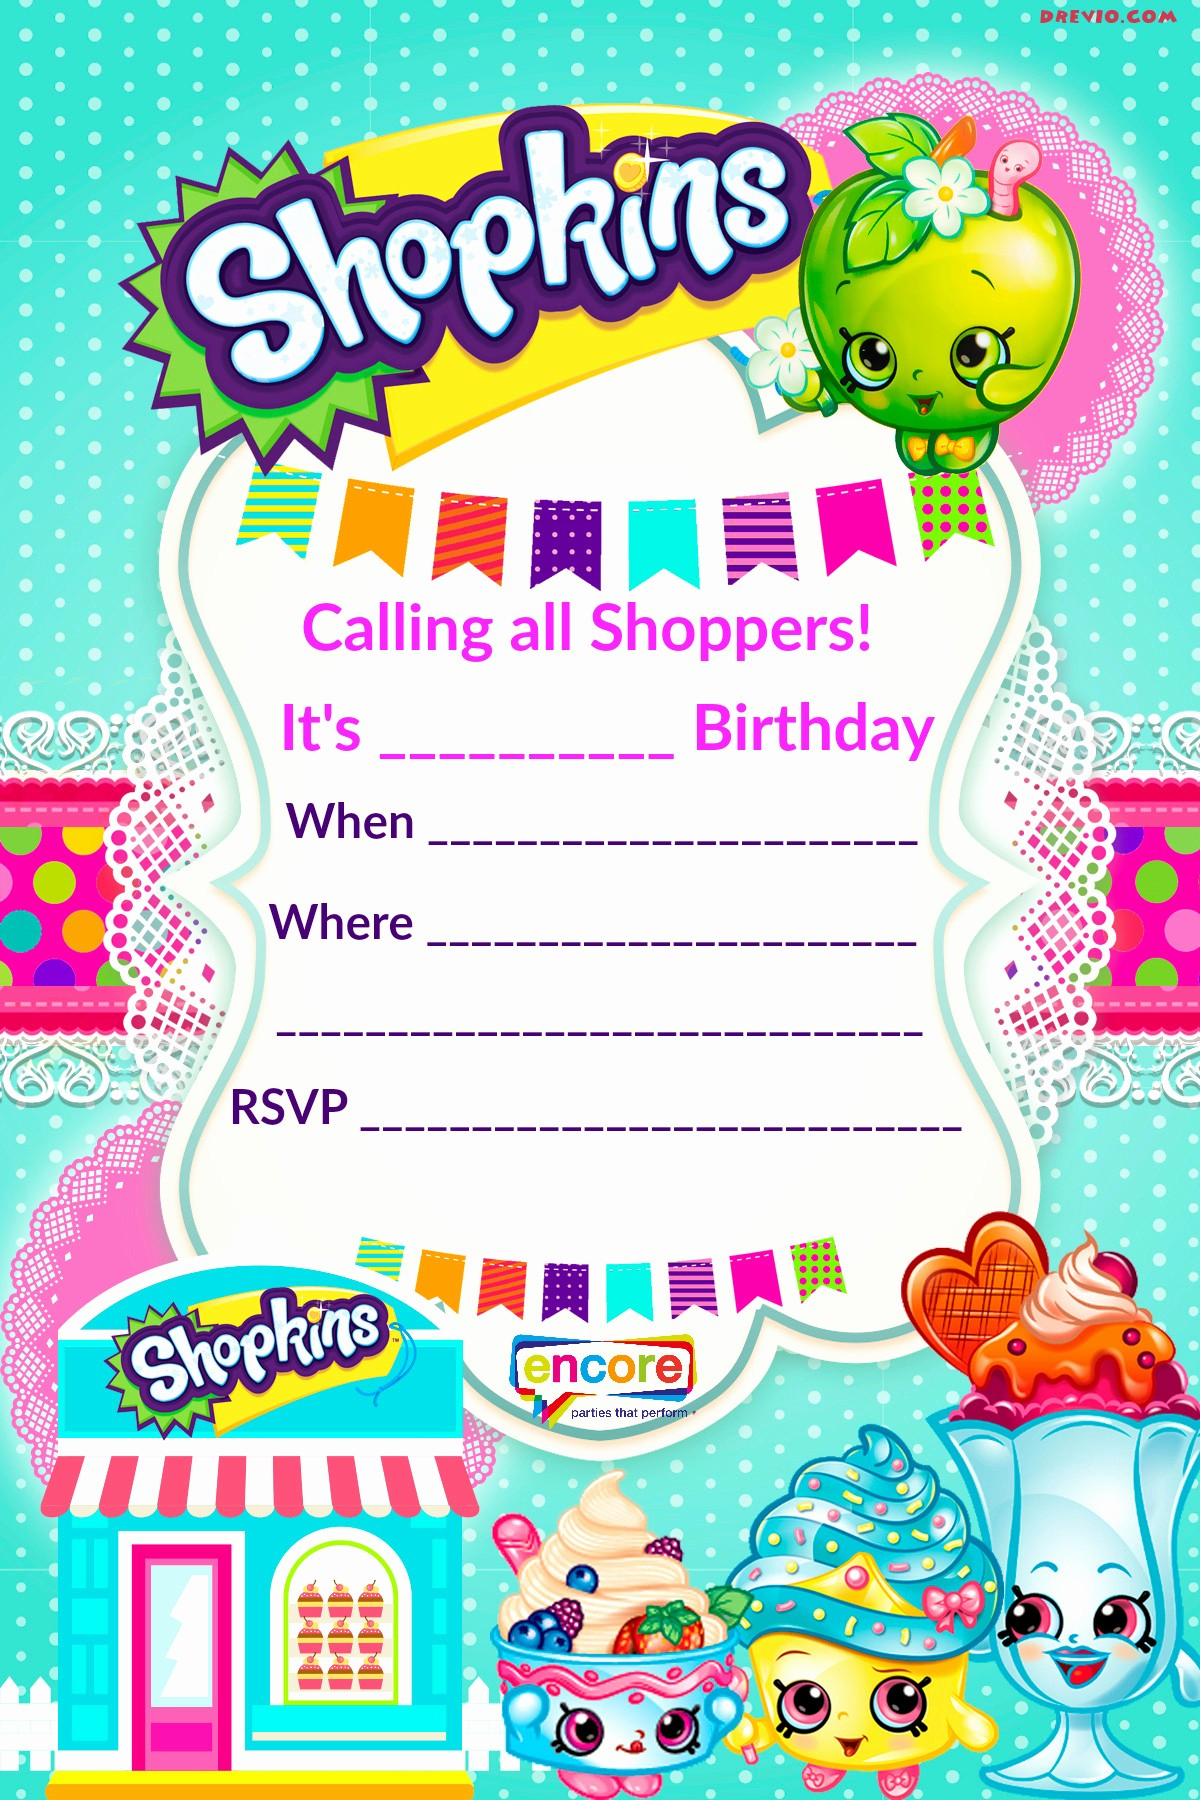 Free Printable Party Invitations Templates Unique Updated – Free Printable Shopkins Birthday Invitation